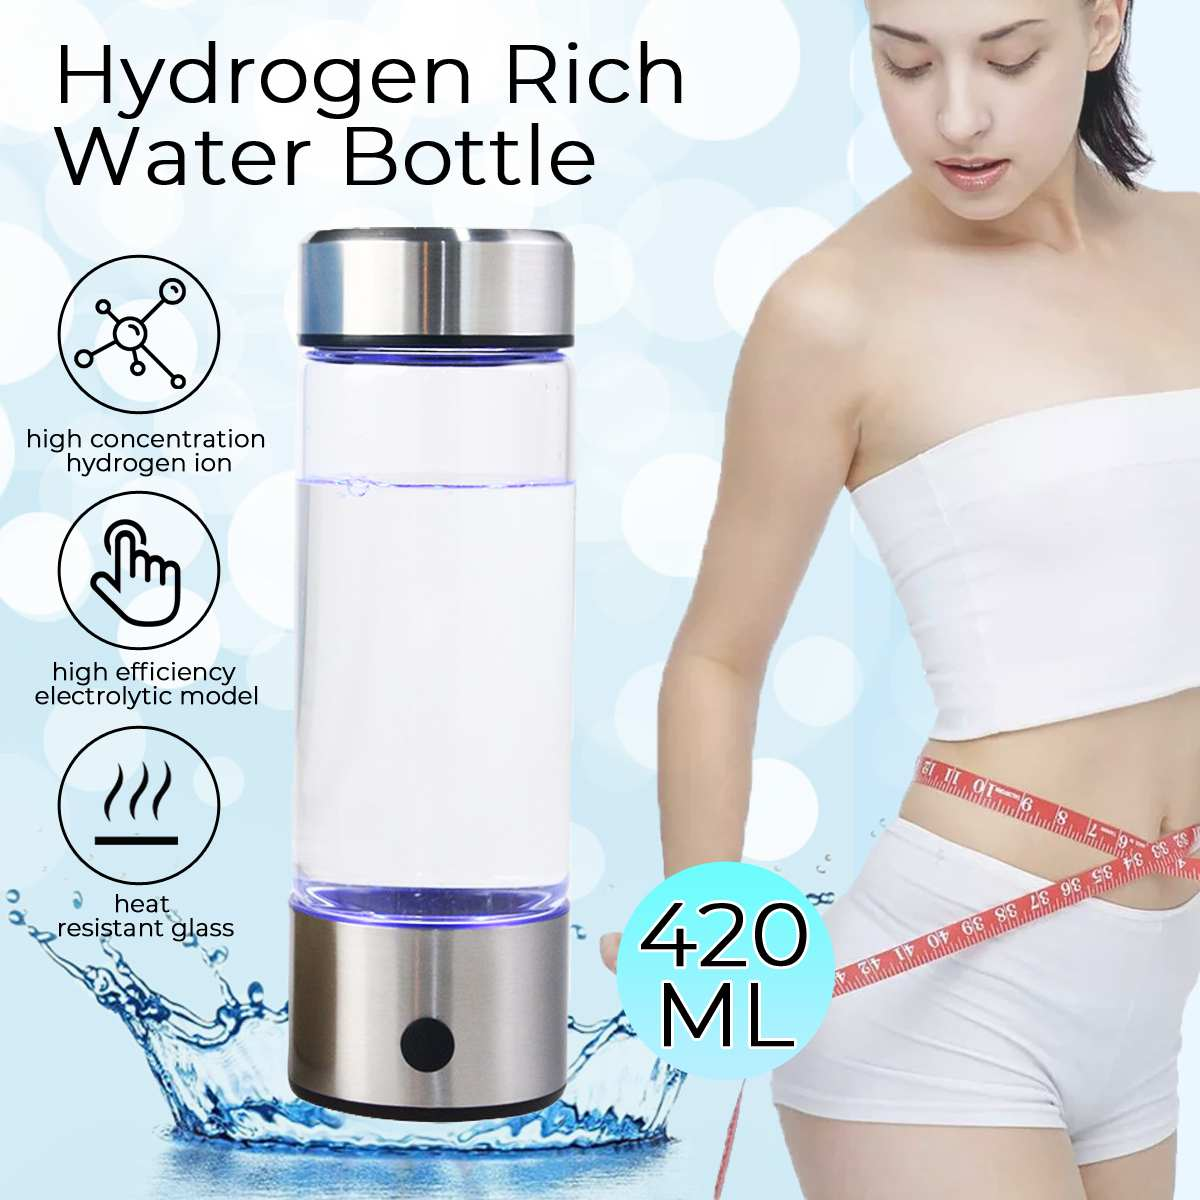 420ML Hydrogens Water Generator Alkaline Maker USB Rechargeable Portable For Pure Hydrogen-rich Water Bottle Filter Electrolysis